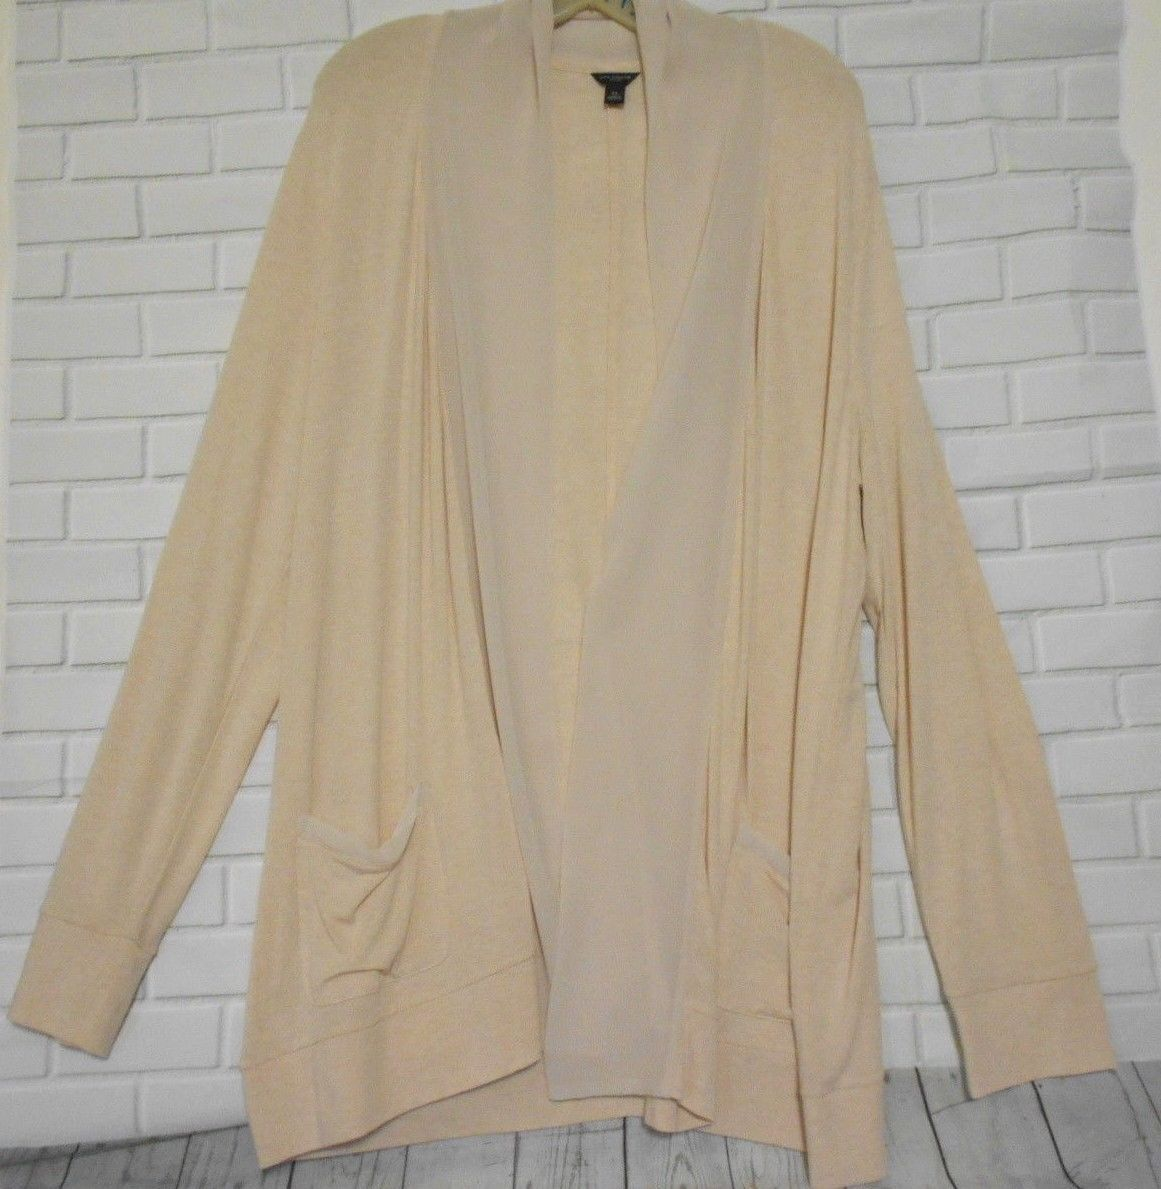 Ann Taylor Pale Peach X Large Open Flare Long Sleeve Cardigan Sweater - $18.60